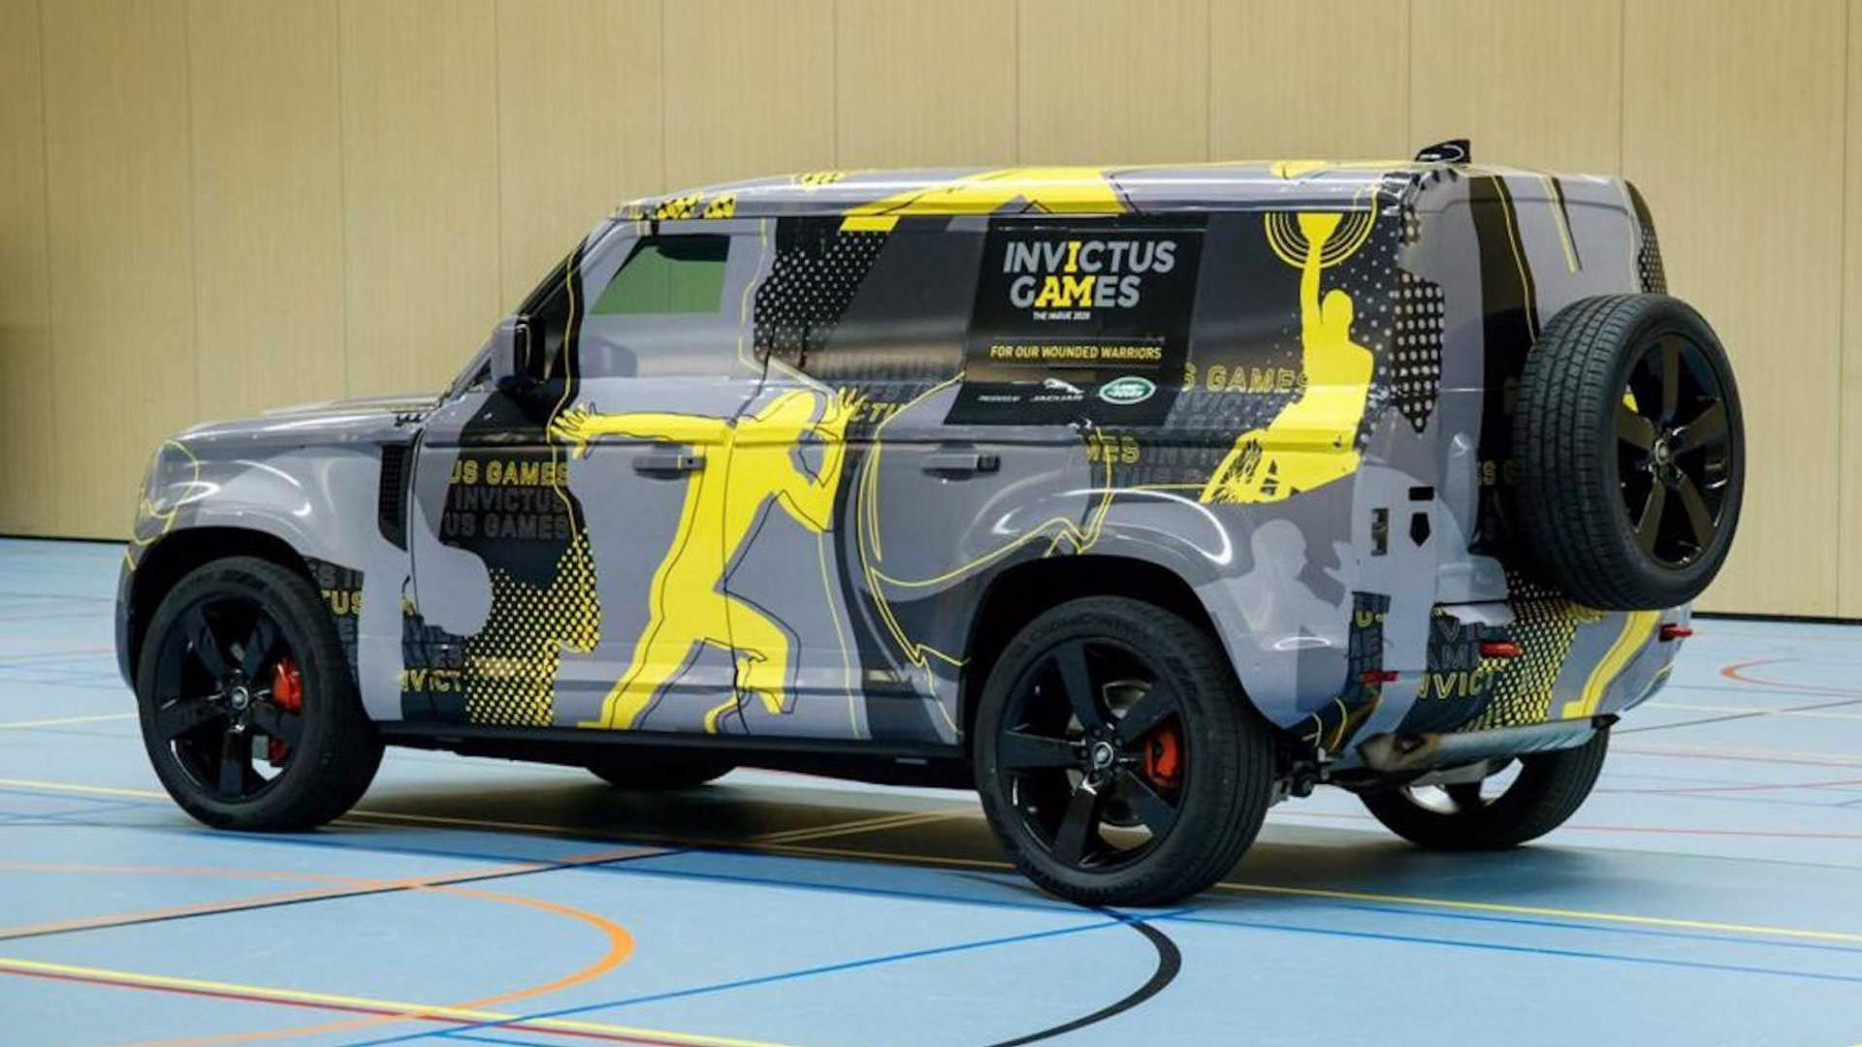 6 Land Rover Defender Returns In Close-Up Shots